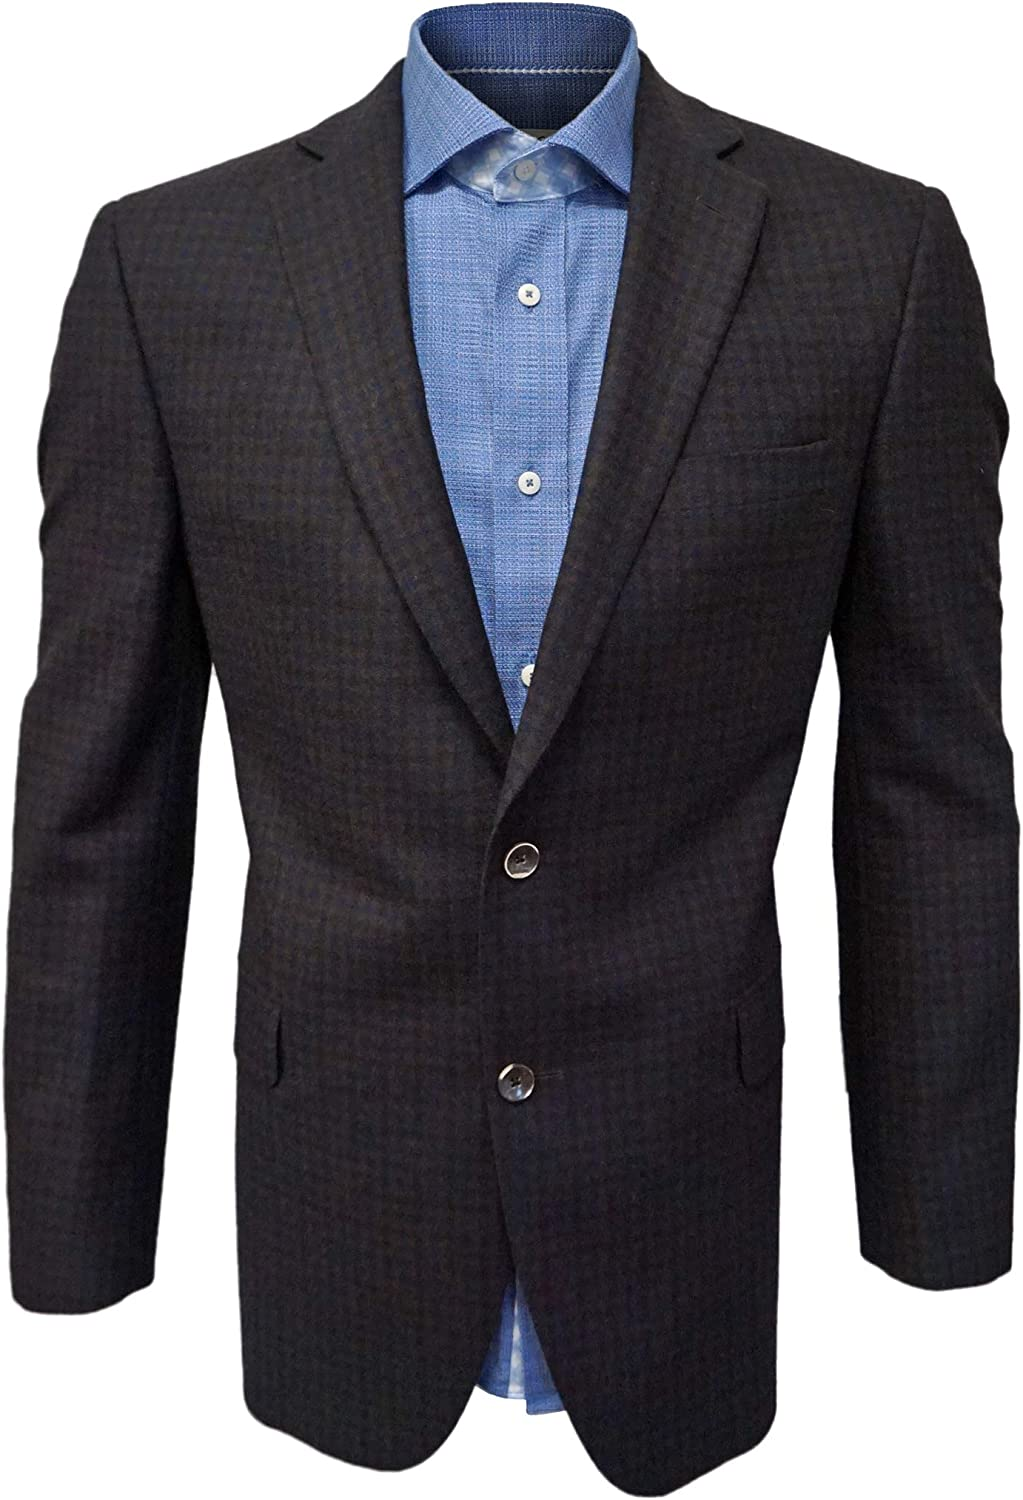 Jack Victor Brown & Navy Blue Blazer, 100% Wool, Two Button, Single Breasted